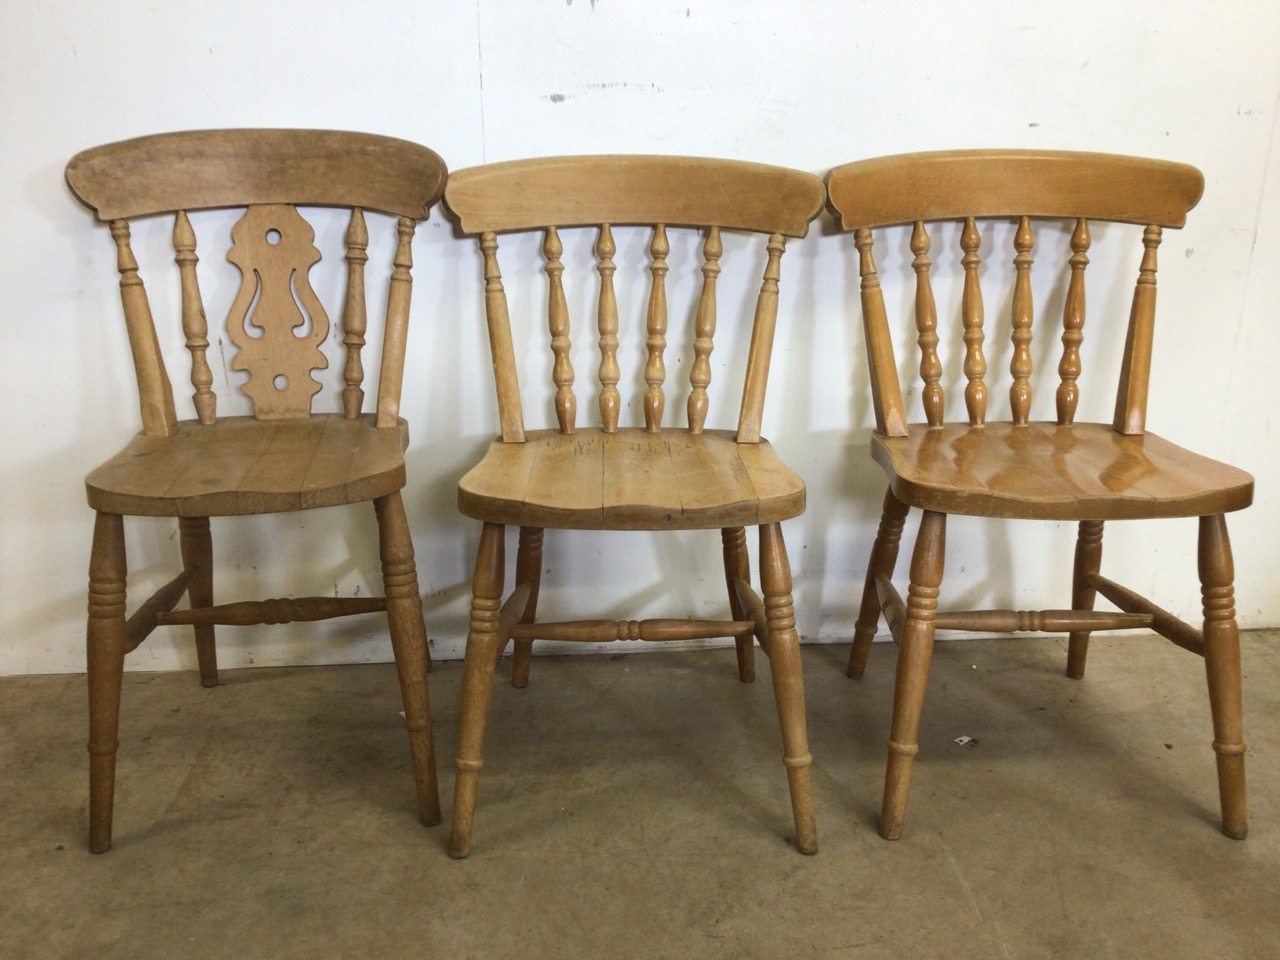 A pair of hardwood kitchen chairs and another. W:44cm x D:43cm x H:84cm